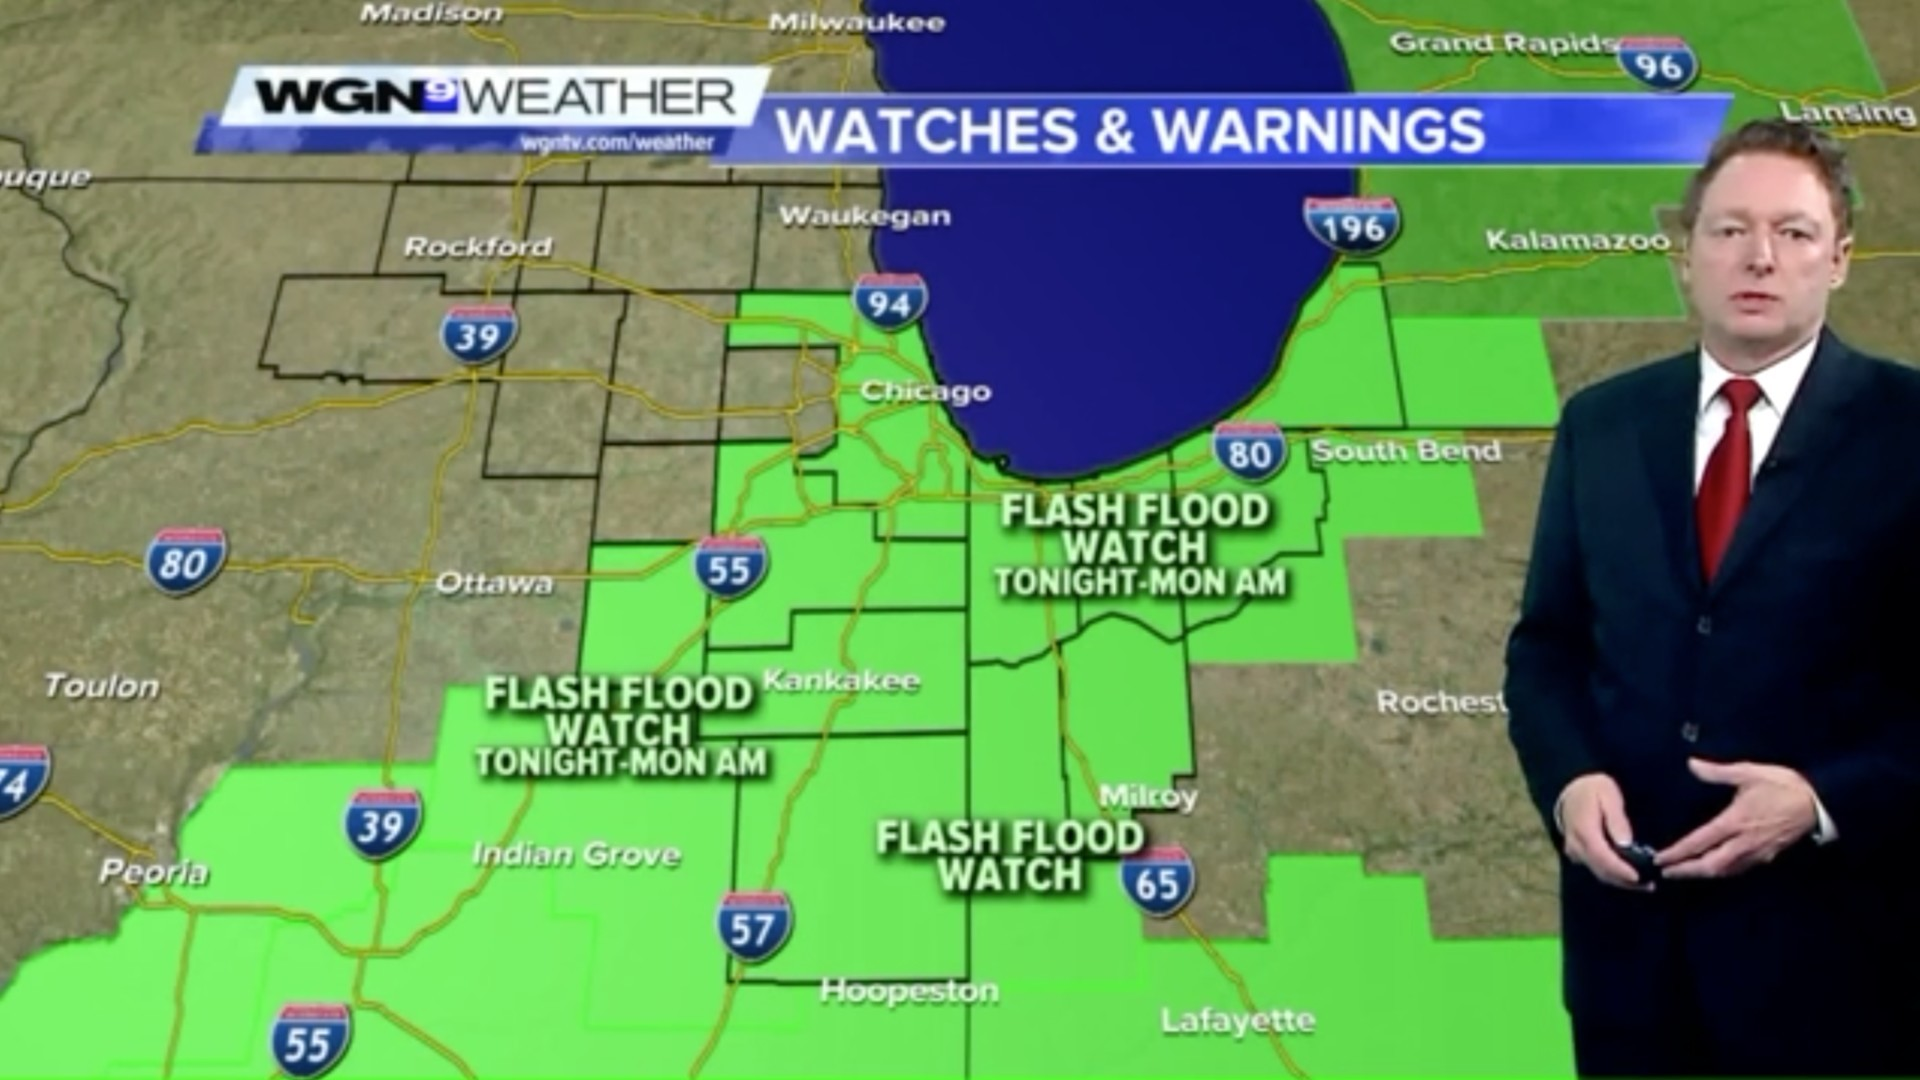 wgn weather forecast for april 29  2017